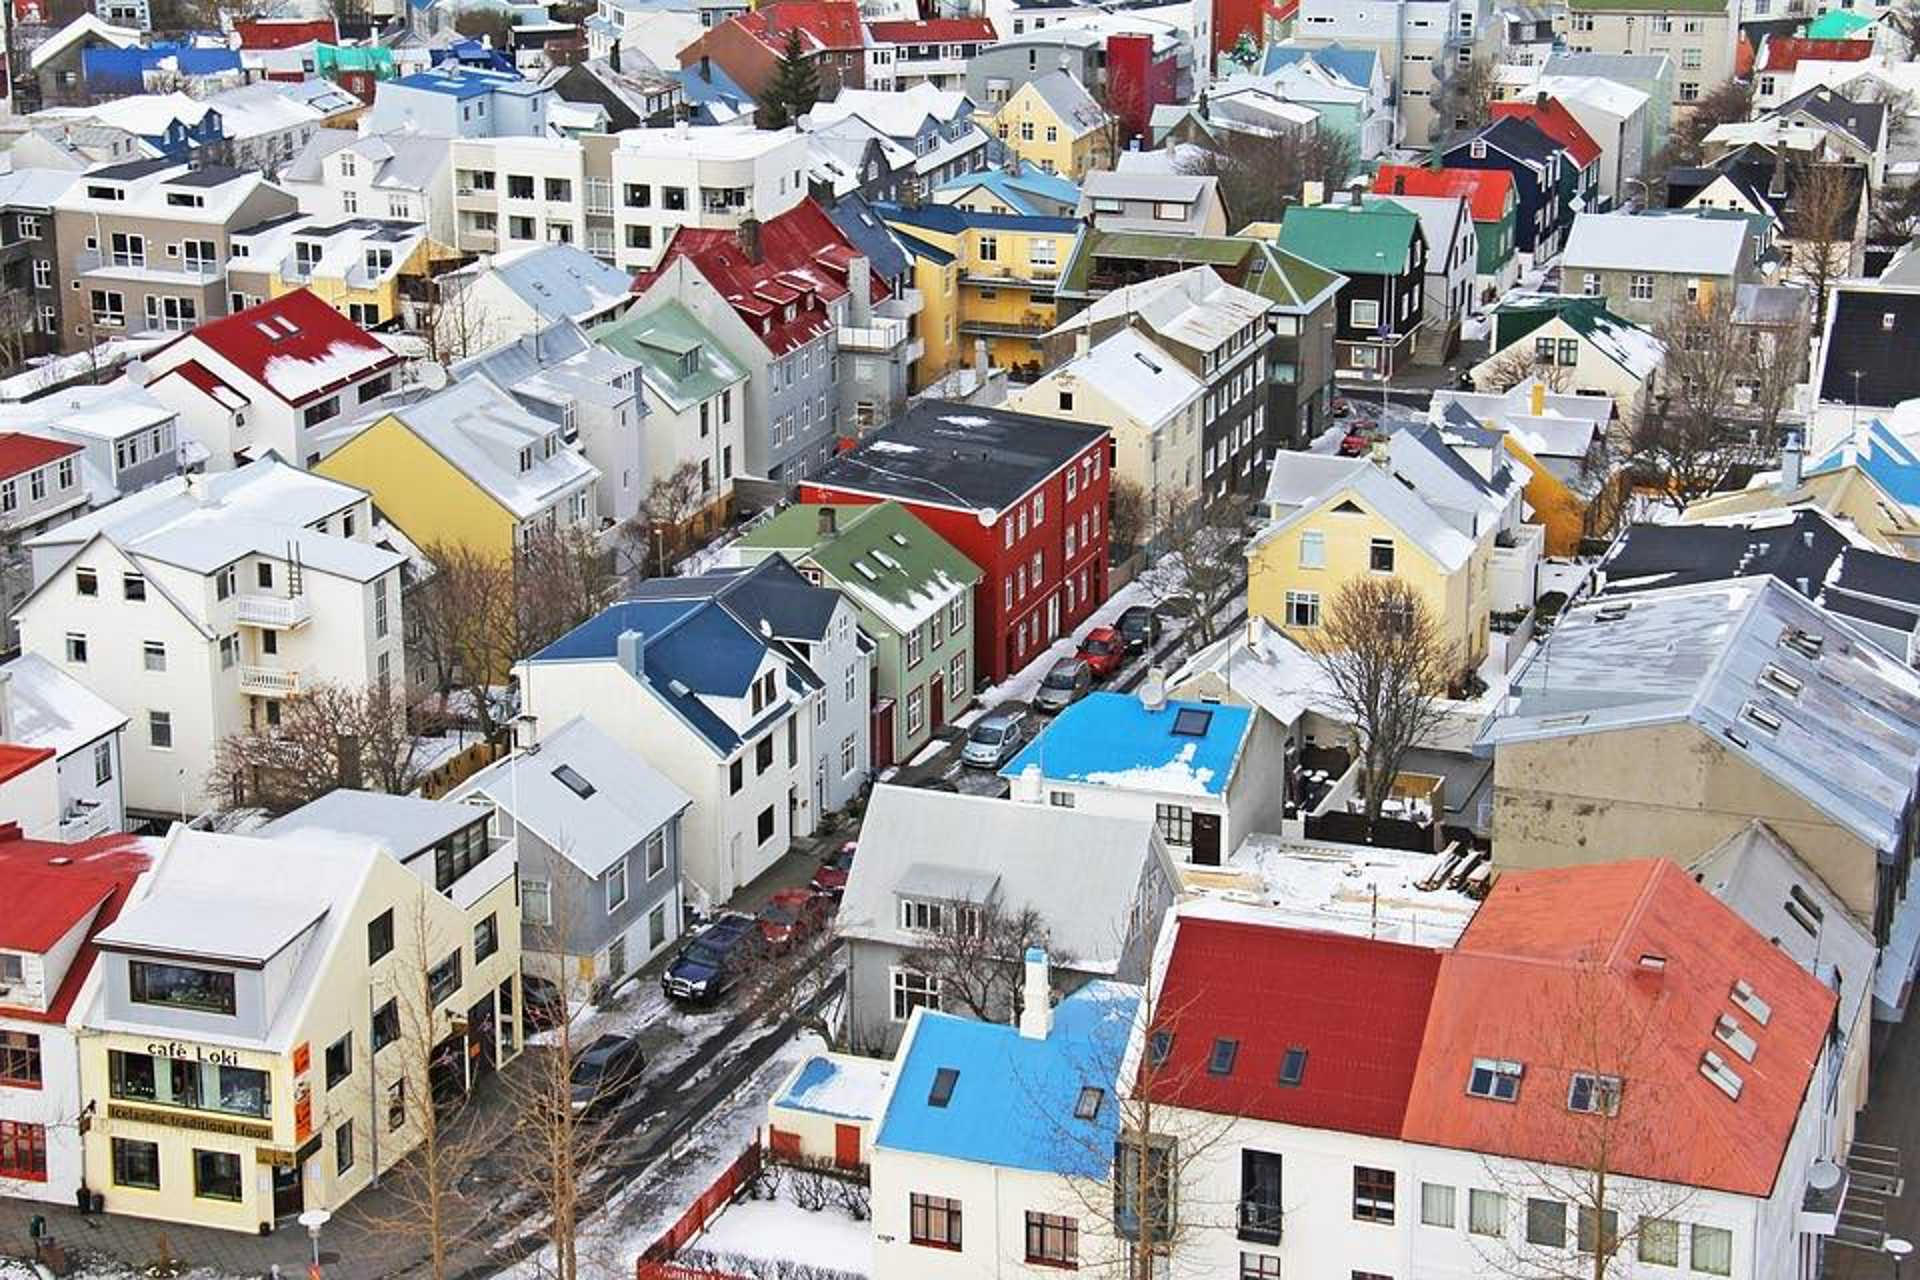 12 - Houses Iceland